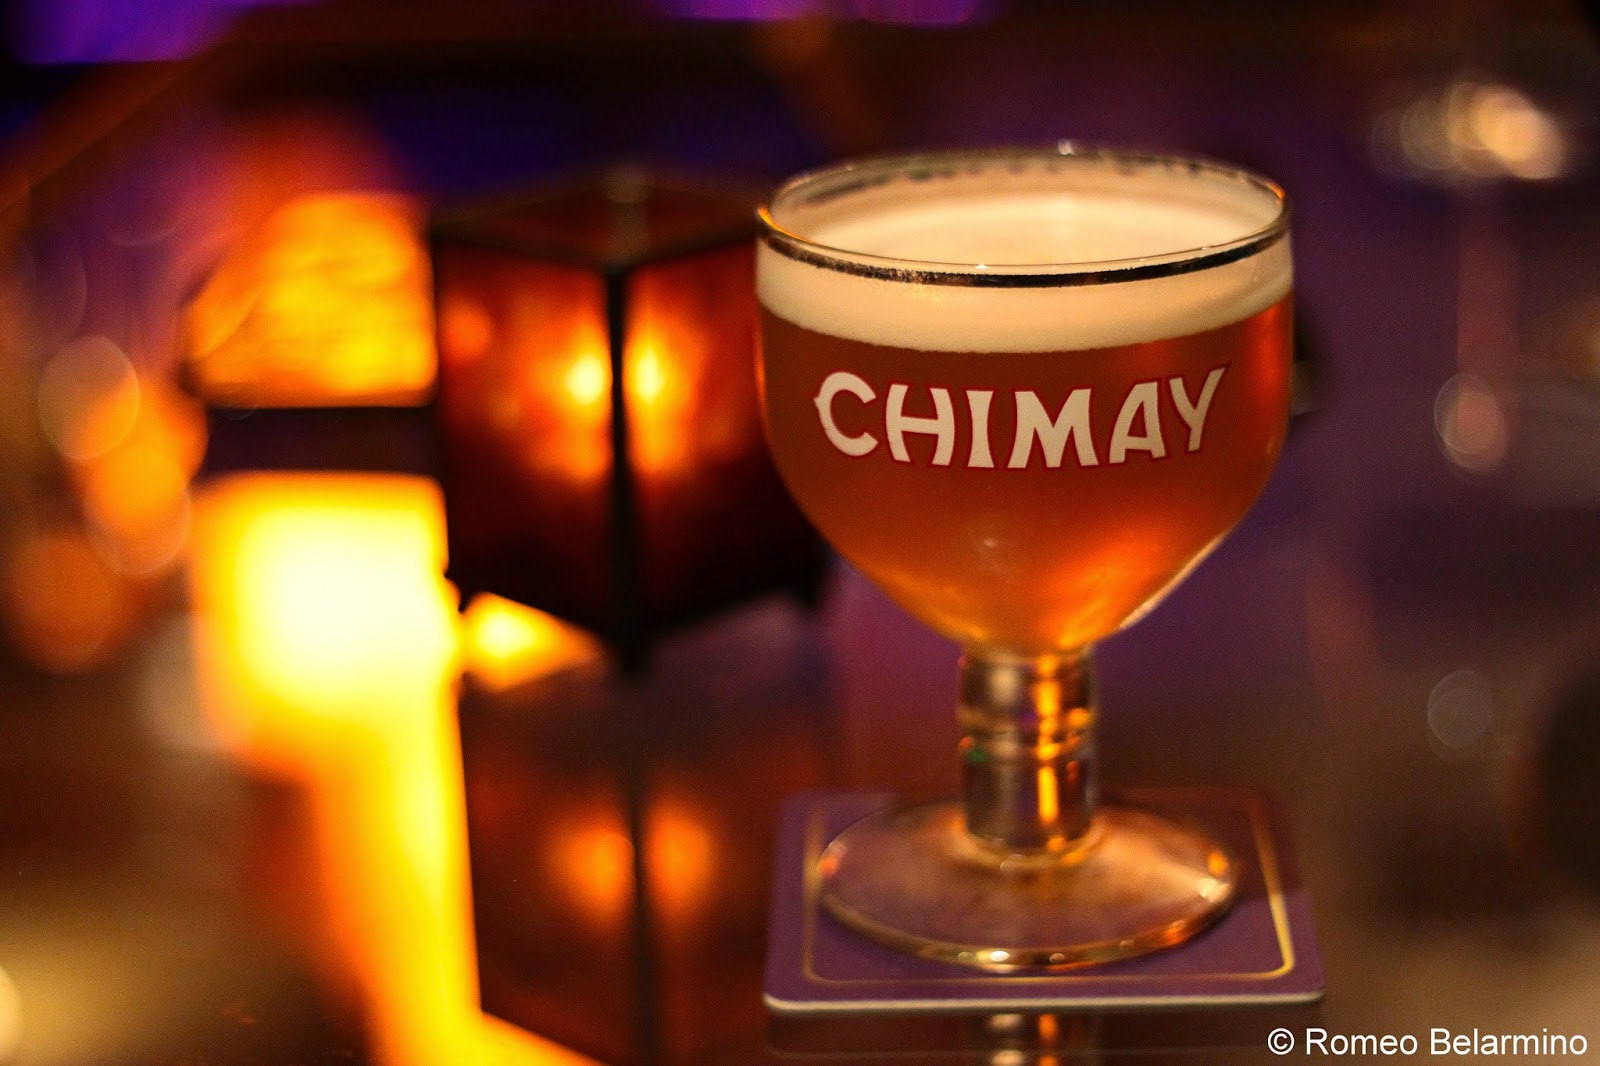 Chimay at Patrick's Bar Vin New Orleans